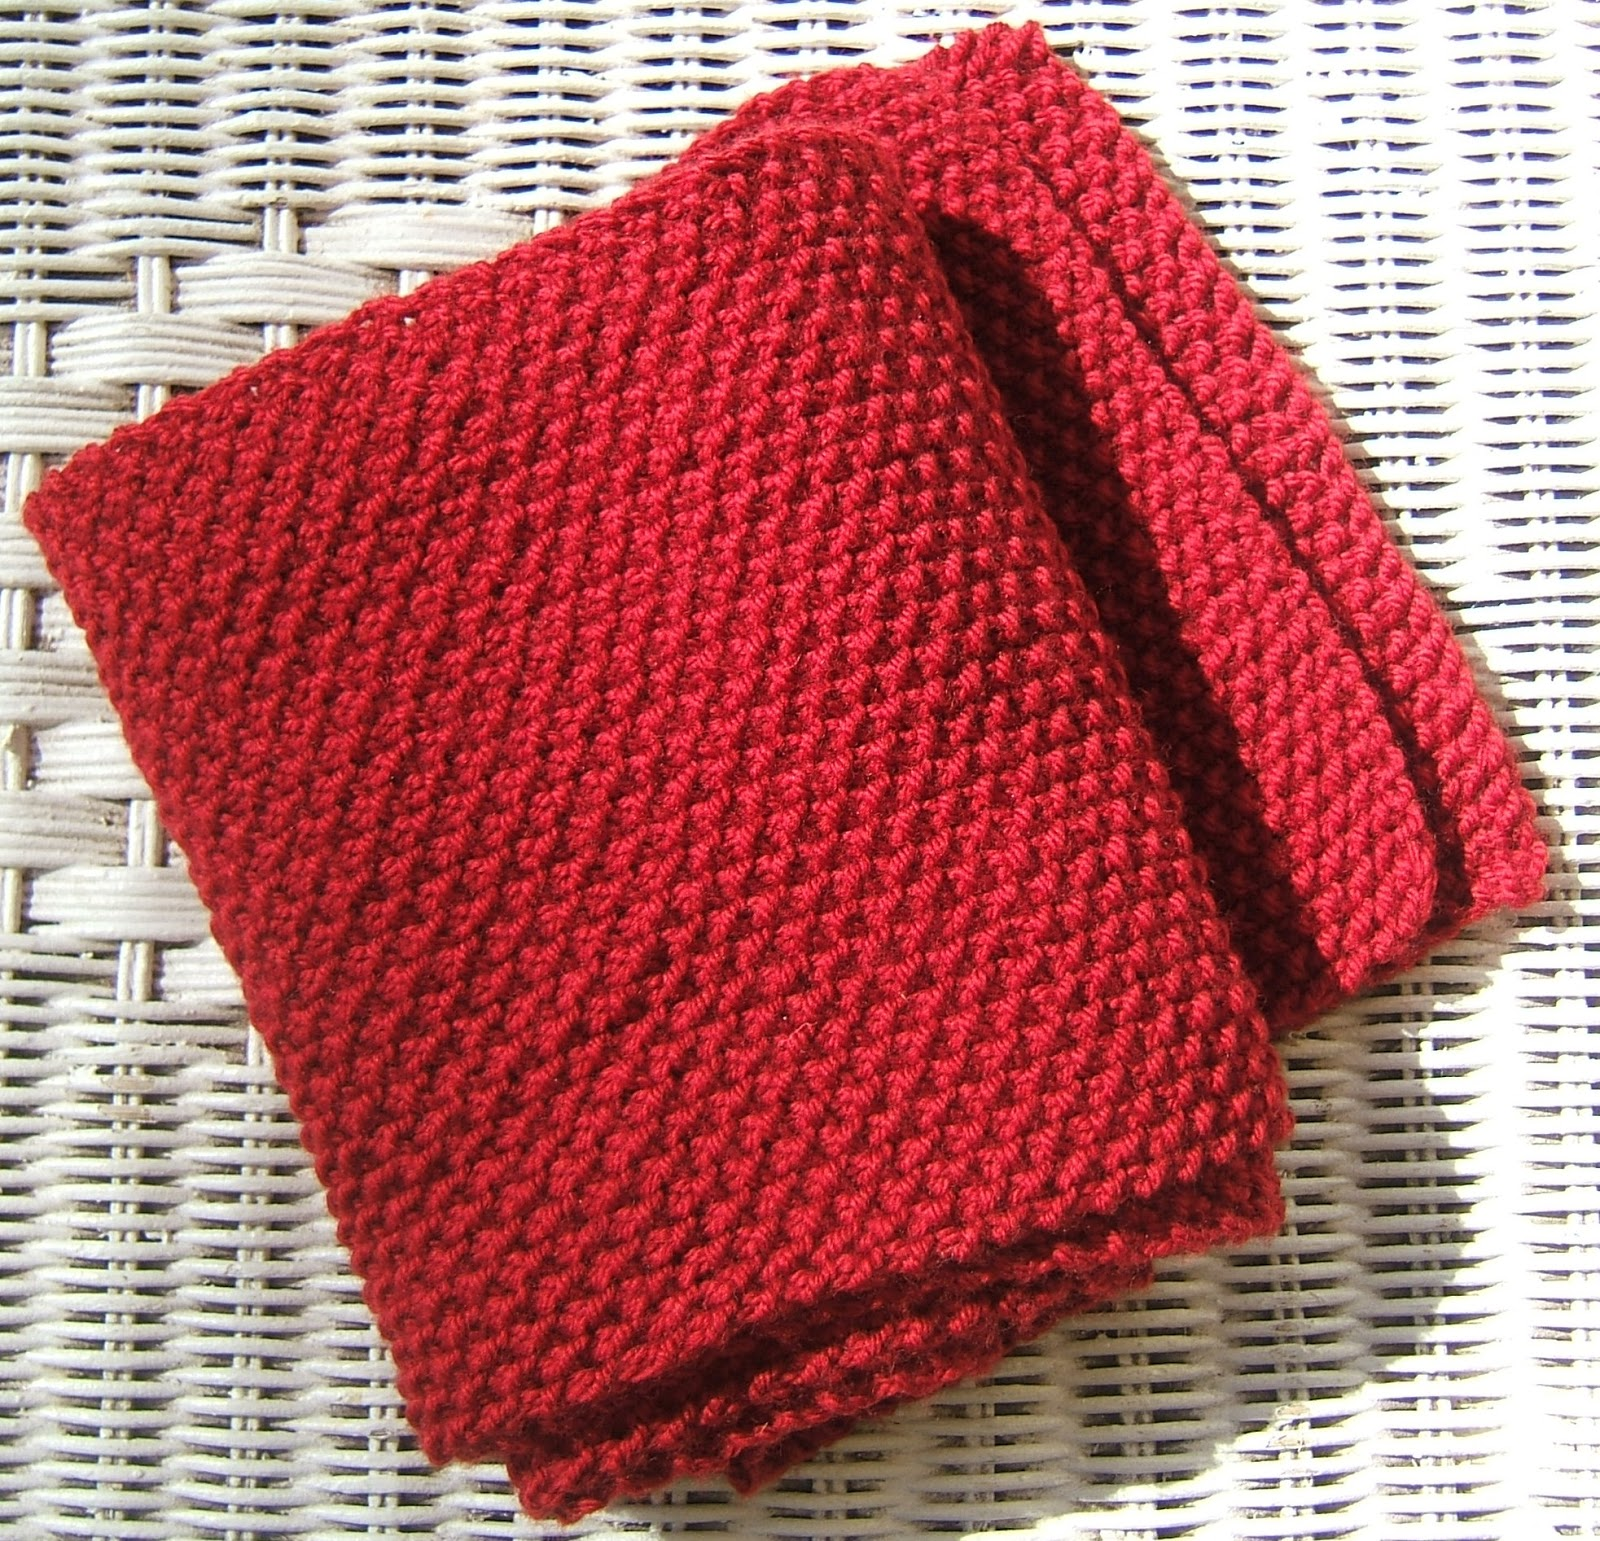 Moss Stitch Scarf Knitting Pattern : aussie knitting threads: Moss Stitch Scarf - Beginners